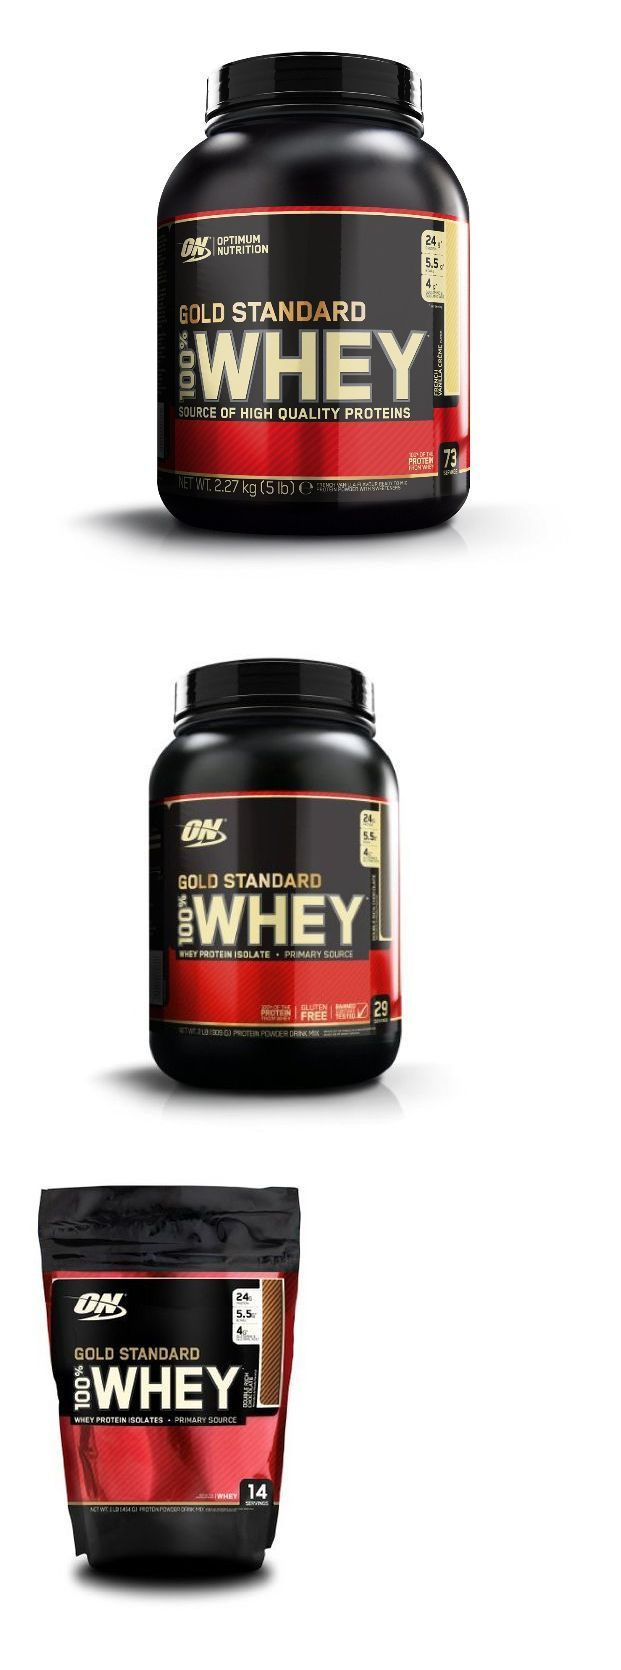 Energy Bars Shakes and Drinks: Gold Standard Whey Protein Isolate Powder 5 Pound, 2Lb, 1Lb By Optimum Nutrition -> BUY IT NOW ONLY: $44.99 on eBay!